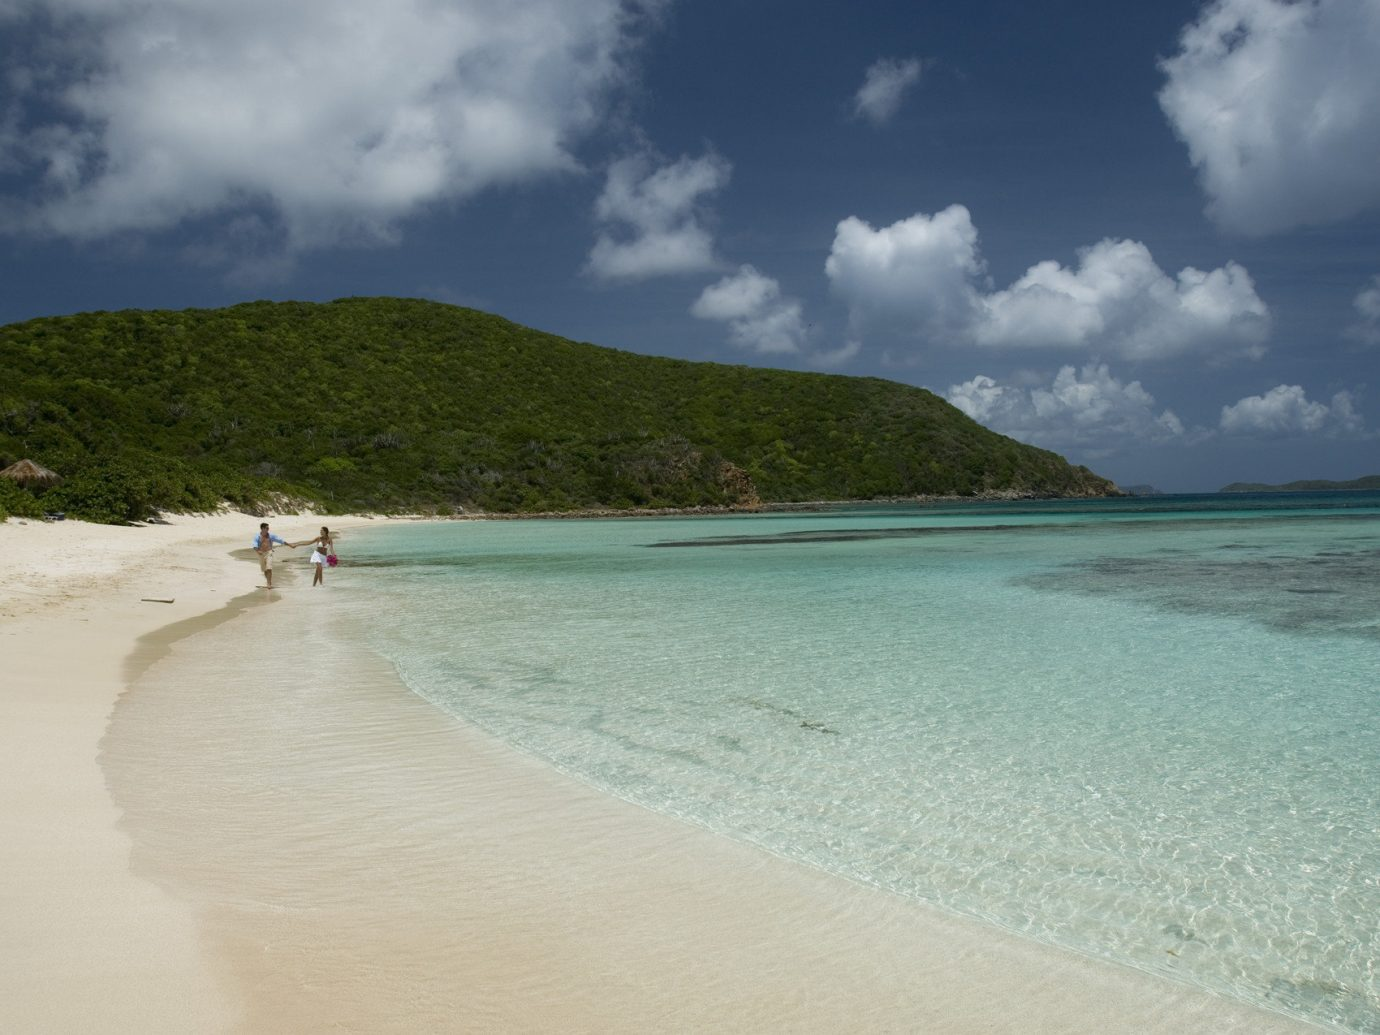 Beach calm clear water Greenery isolation Ocean Outdoors people remote Scenic views serene Trip Ideas Tropical turquoise white sands sky outdoor water Nature Sea shore body of water Coast cloud vacation sand caribbean clouds bay wind wave cloudy Island wave cape tropics sandy day